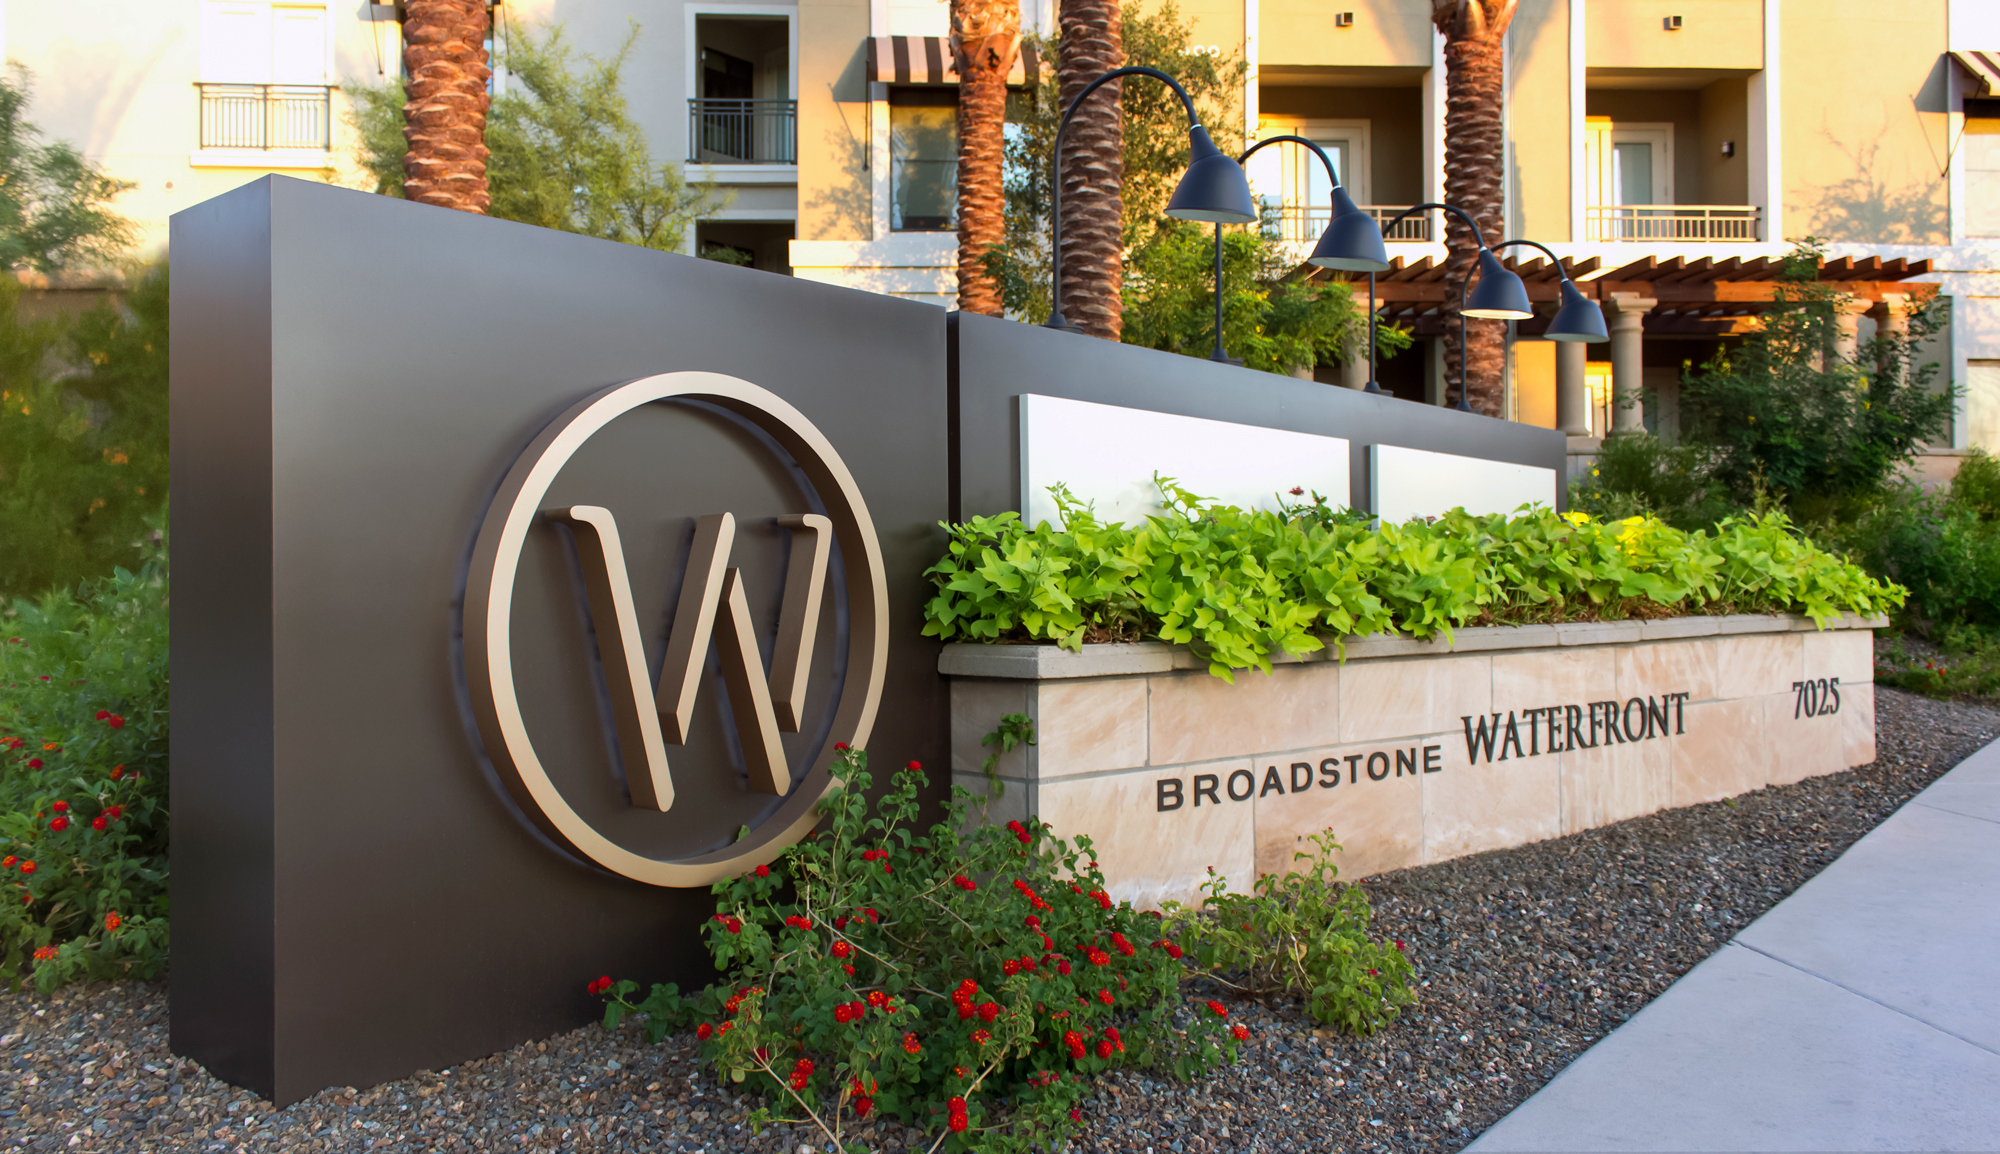 The project's multi-tenant ground sign.This monument sign incorporates both direct and indirect lighting elements.